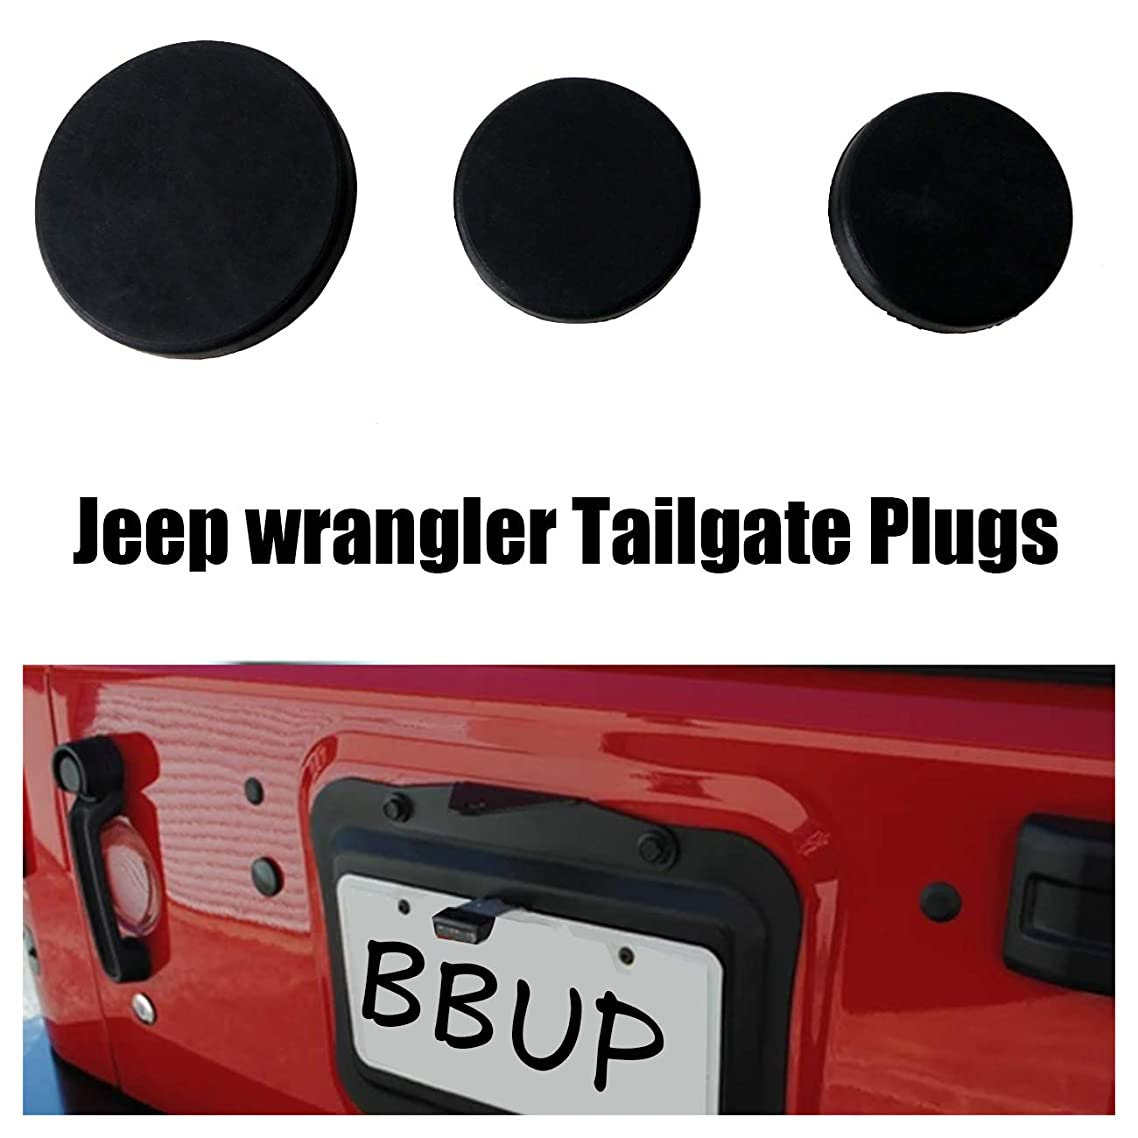 Tailgate Plugs for Jeep Rubber Plug Rear Door Body Plugs kit for 2007-2018 Jeep Wrangler JK (3Pcs)